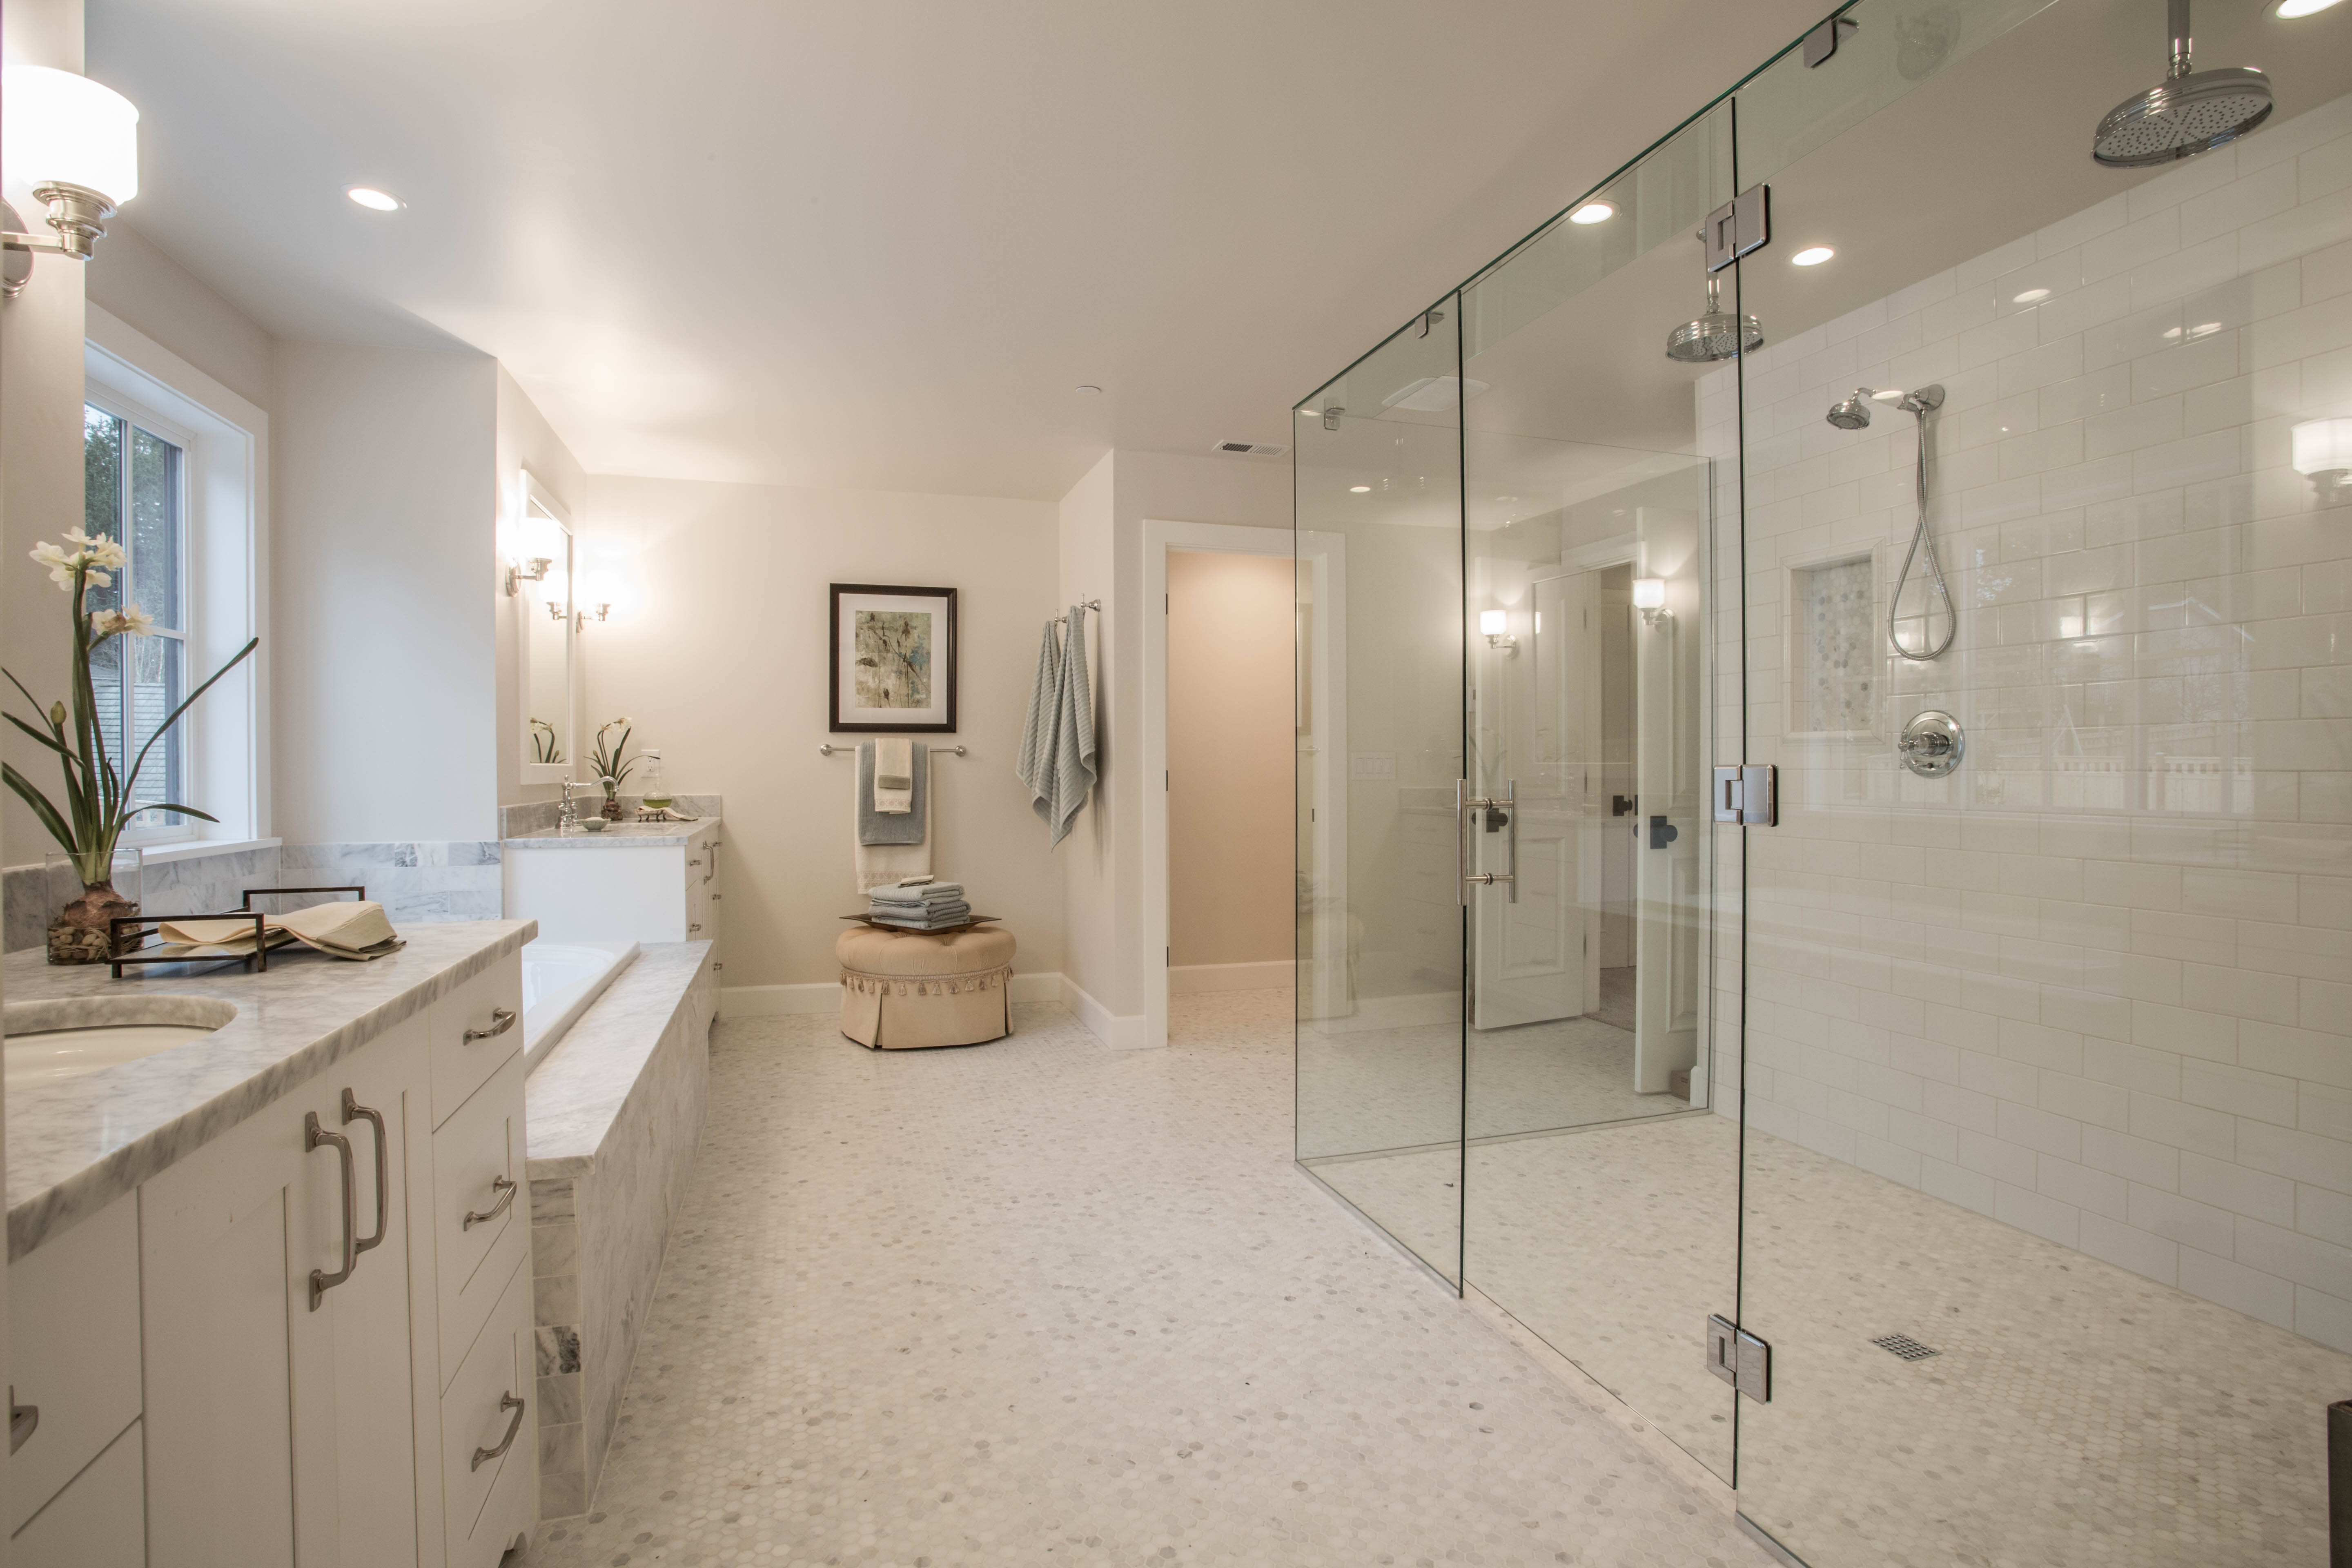 Bath Trends For 2016 Walk In Showers And Quartz Countertops Top The List The Opinionator By